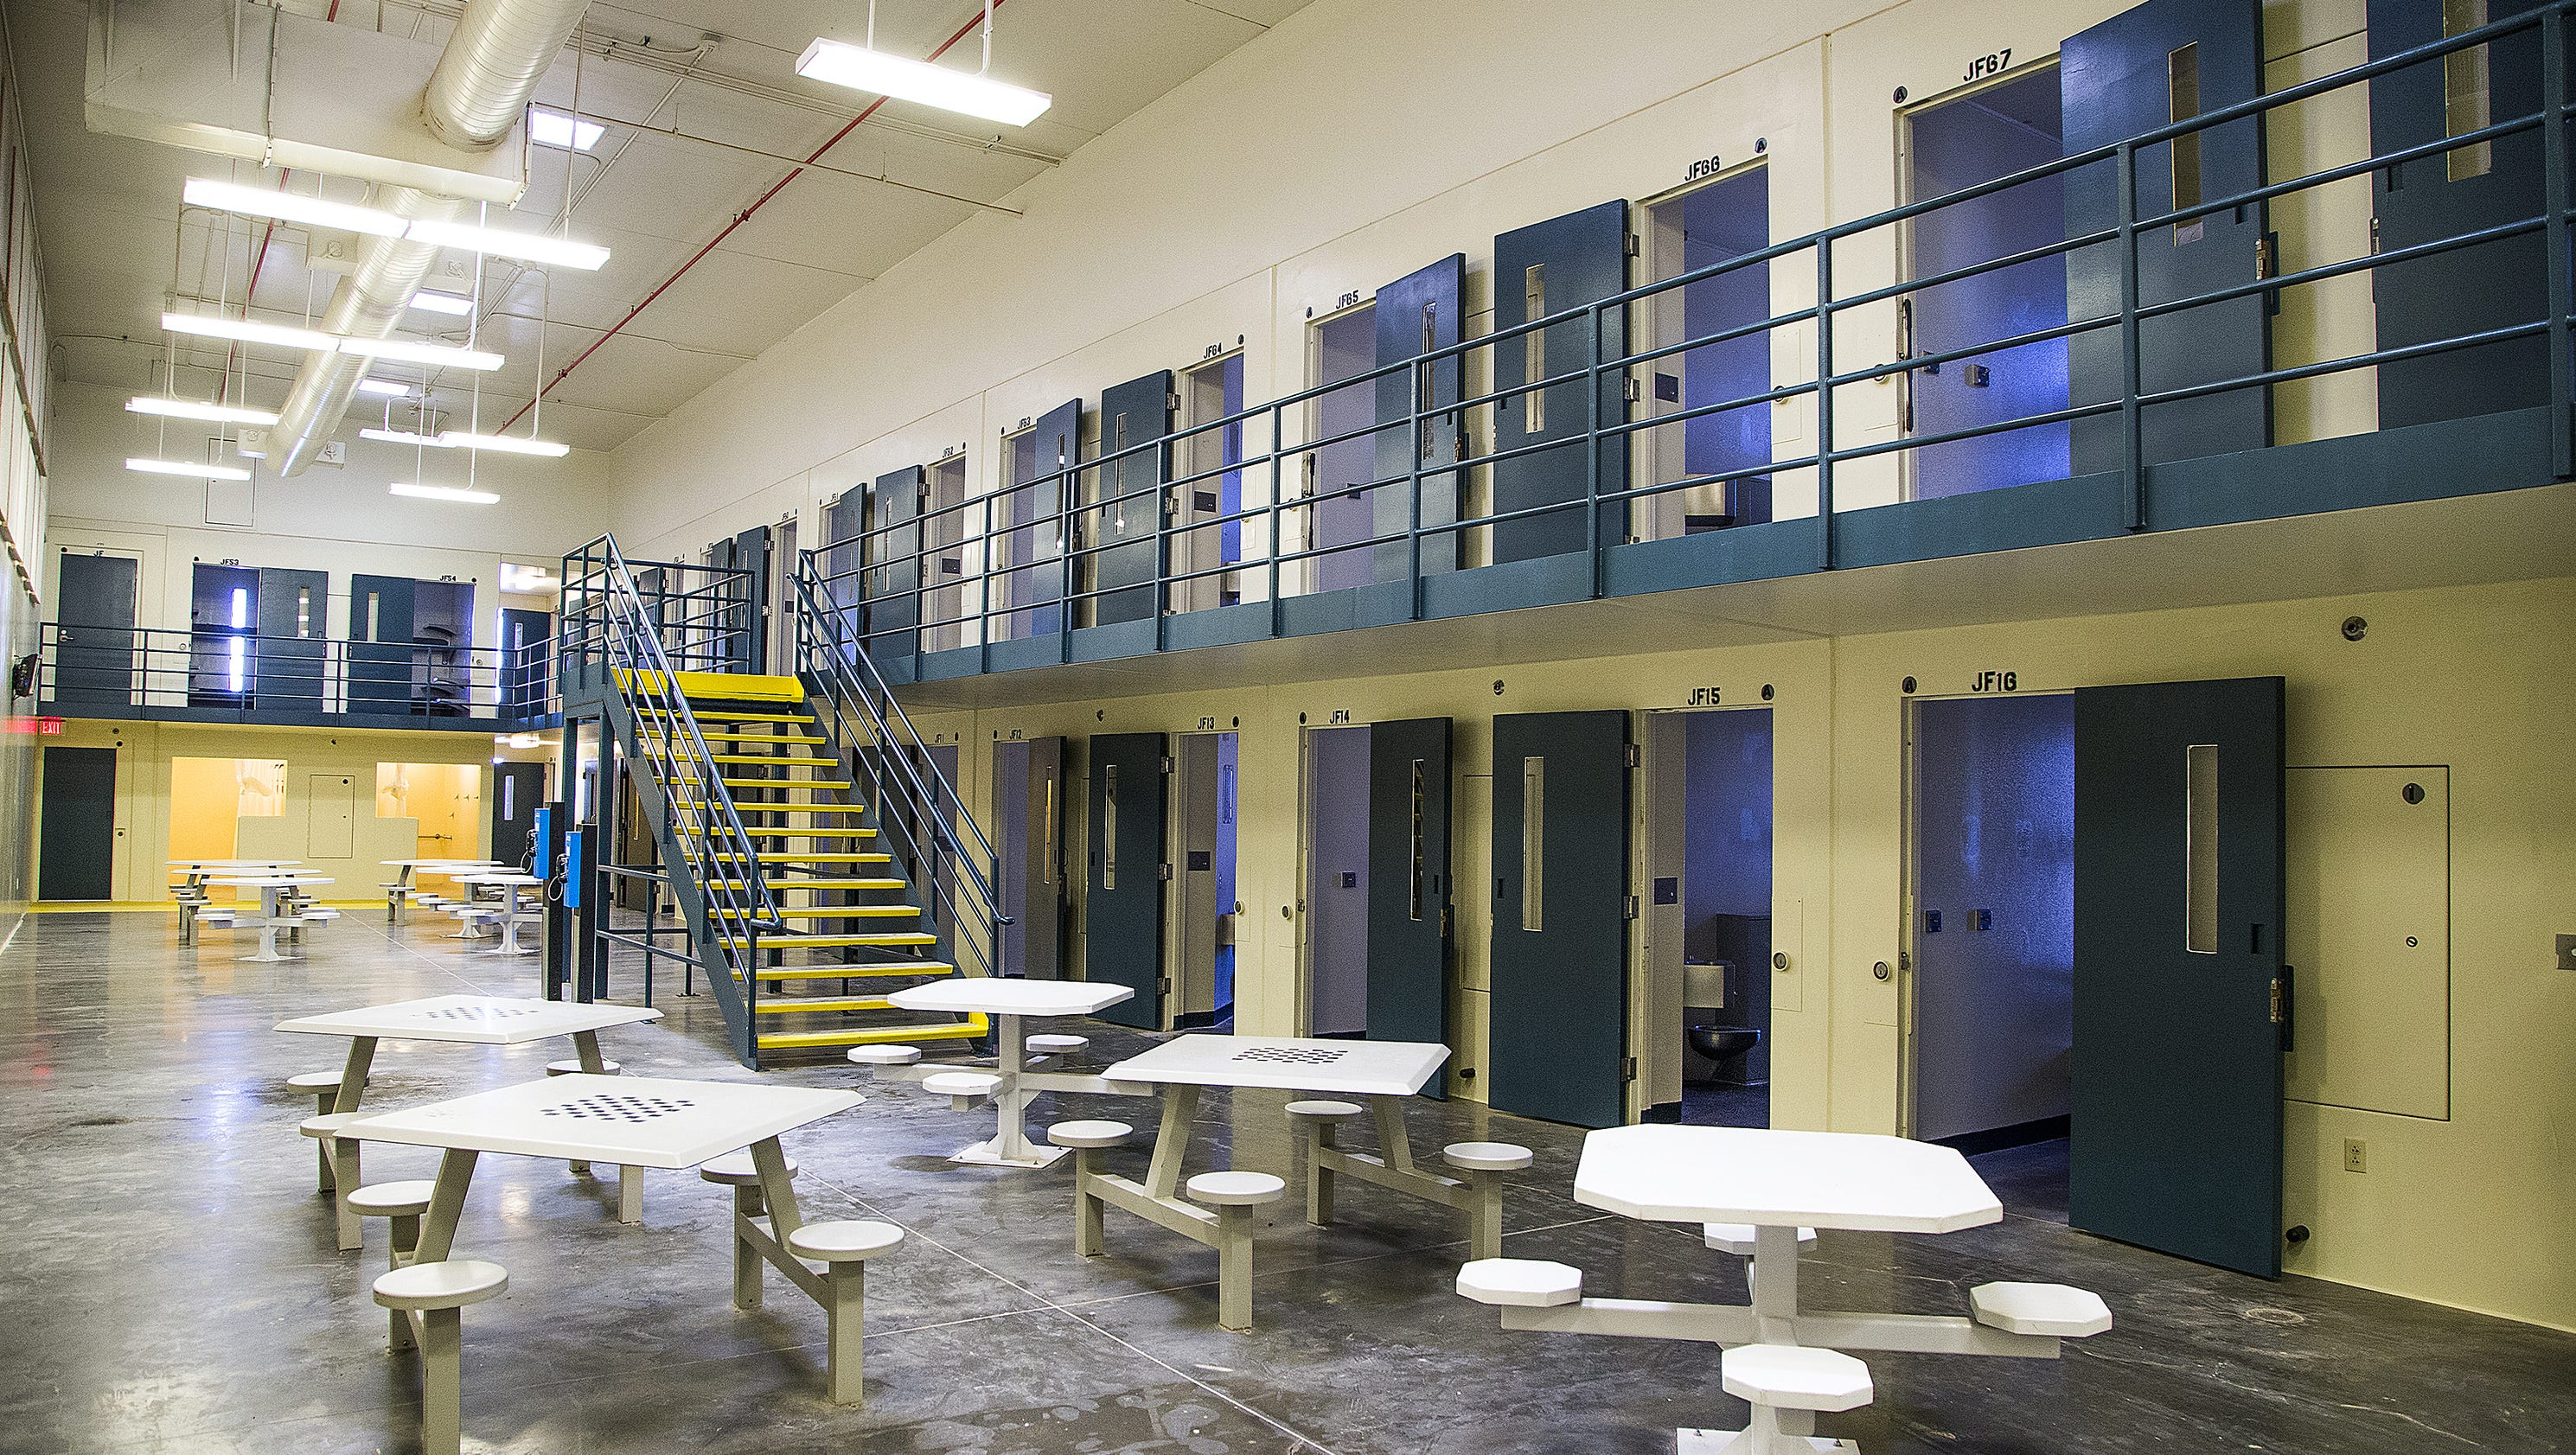 Central Arizona Correctional Center | ICE